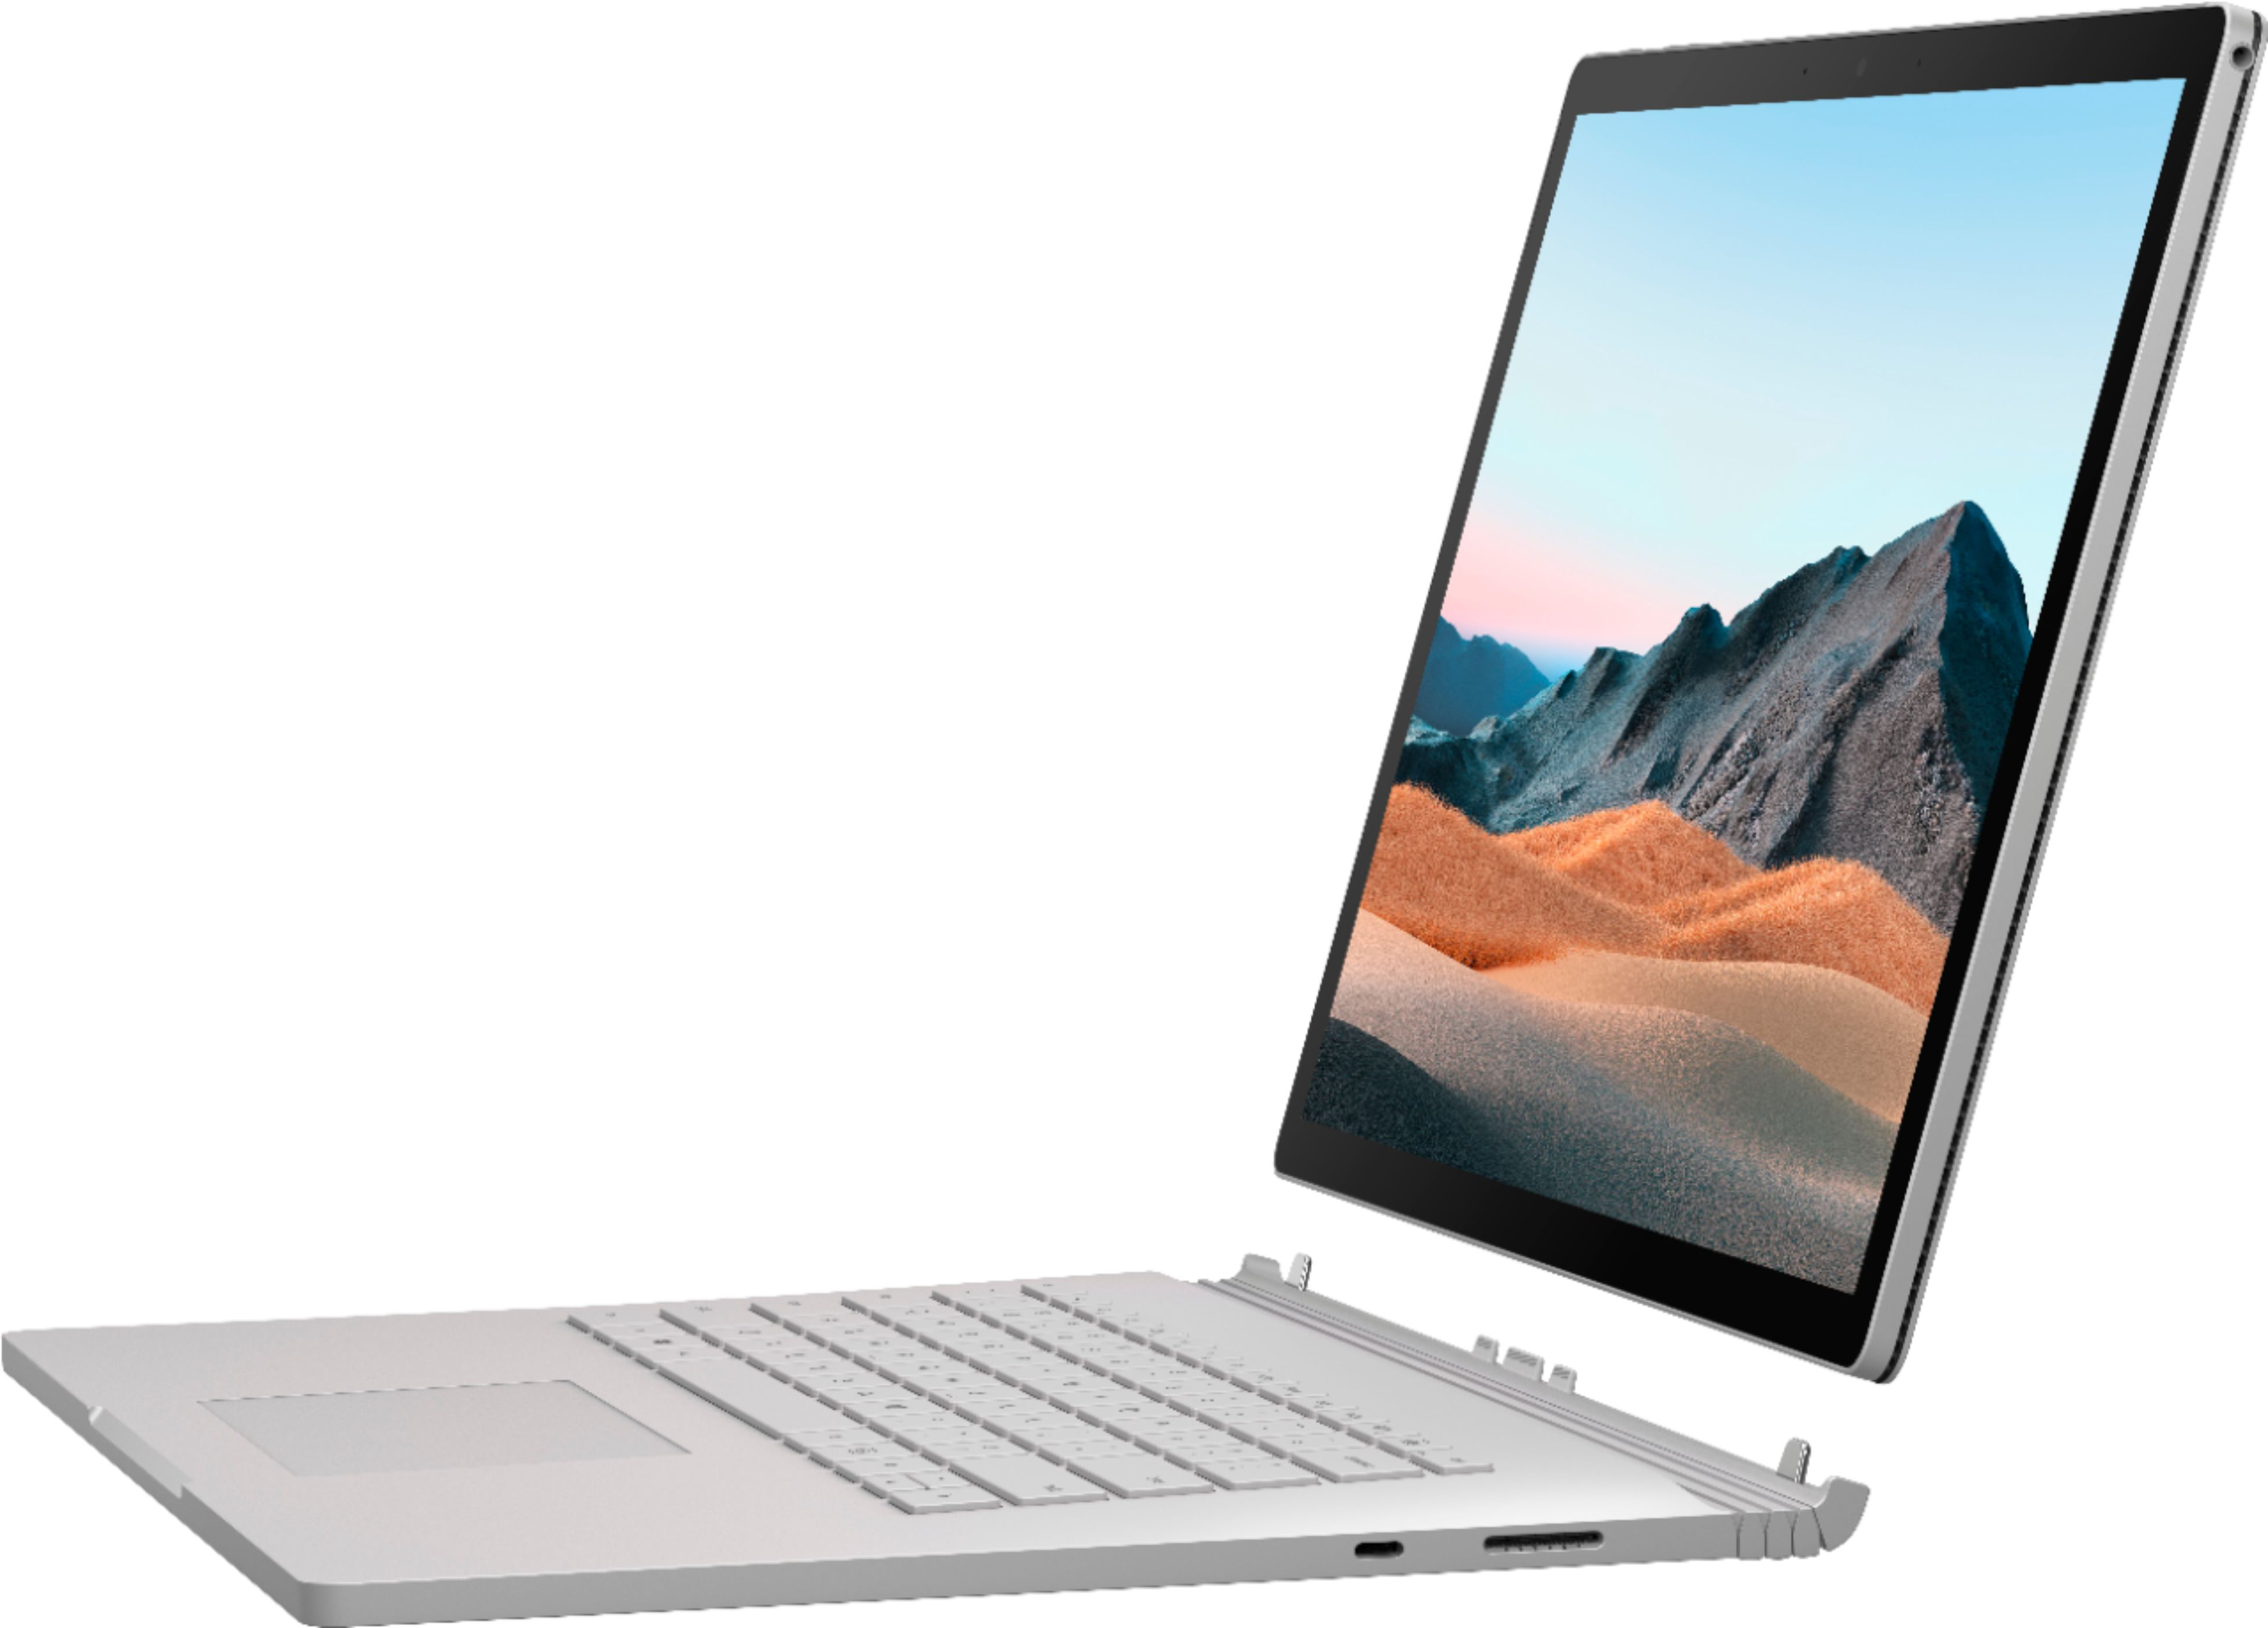 """Front Zoom. Microsoft - Surface Book 3 15"""" Touch-Screen PixelSense™ - 2-in-1 Laptop - Intel Core i7 - 32GB Memory - 512GB SSD - Platinum."""